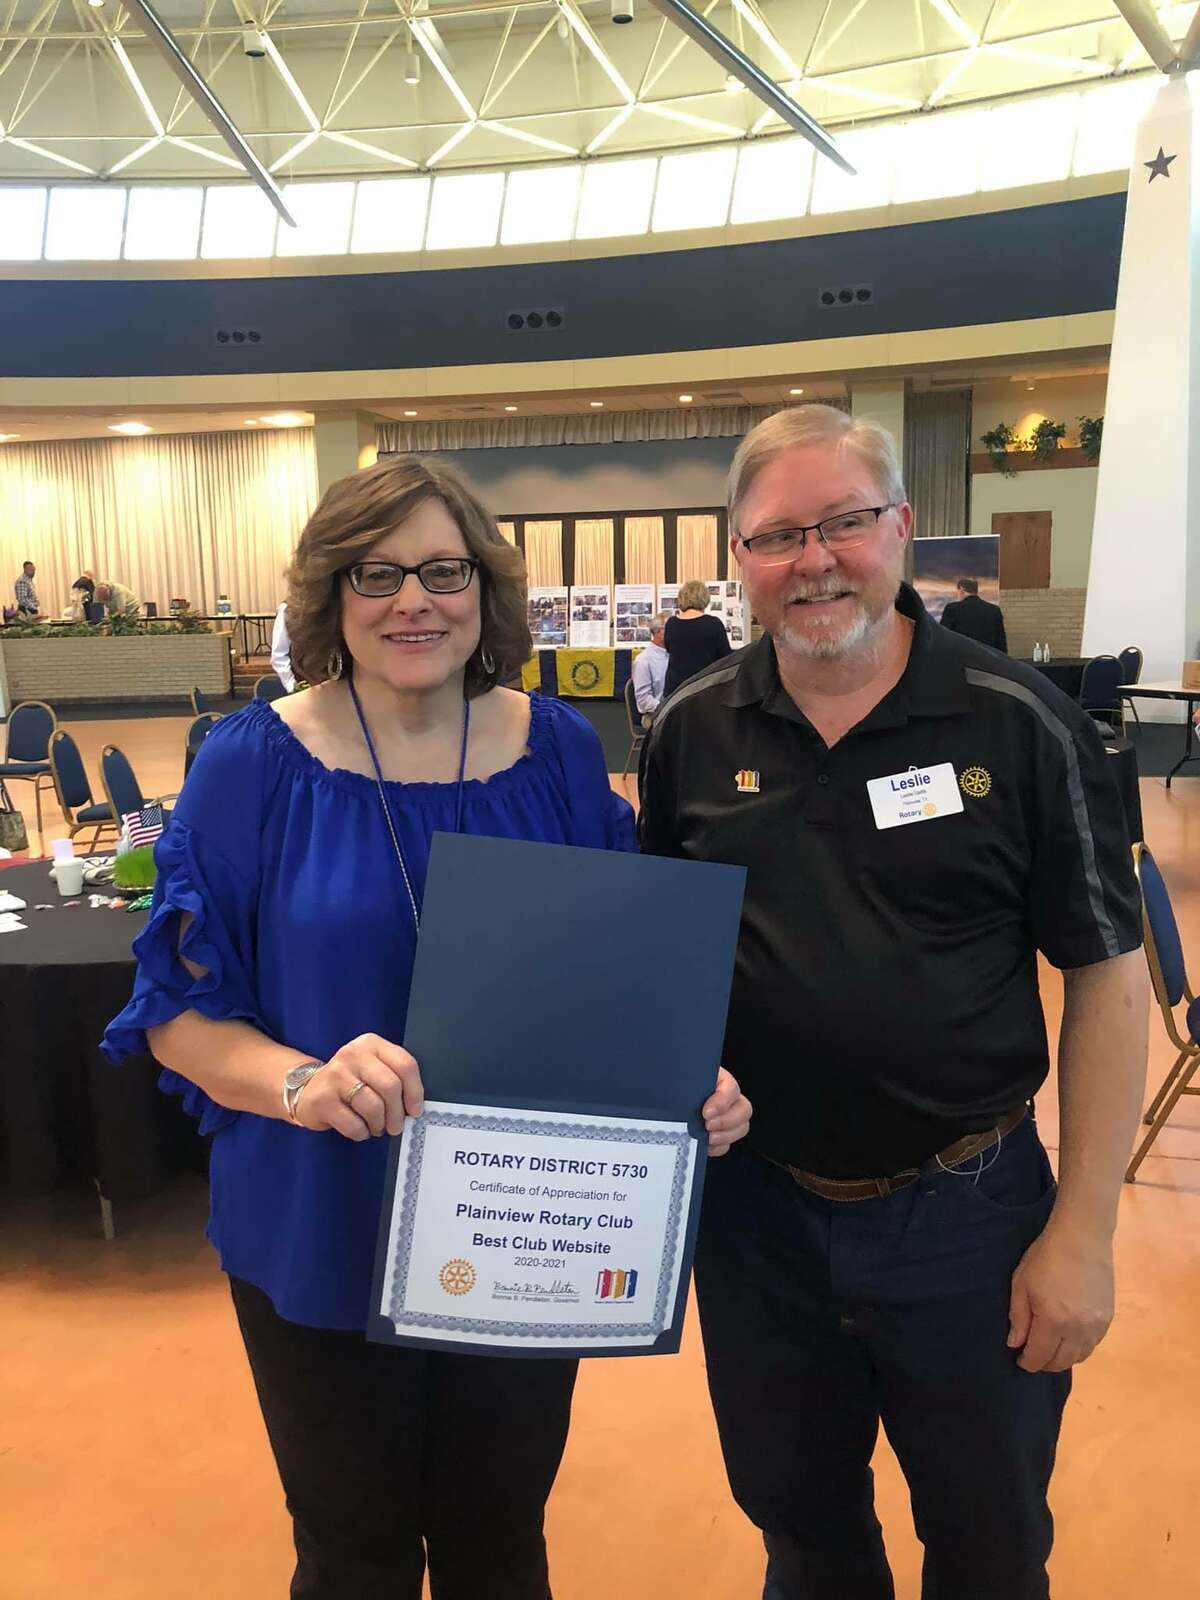 Plainview Rotary Club President Deana Sageser stands with Rotary Assistant Governor Leslie Gattis after a special recognition at the District Rotary Conference. The Plainview club received recognition as the best social media presence in the district.